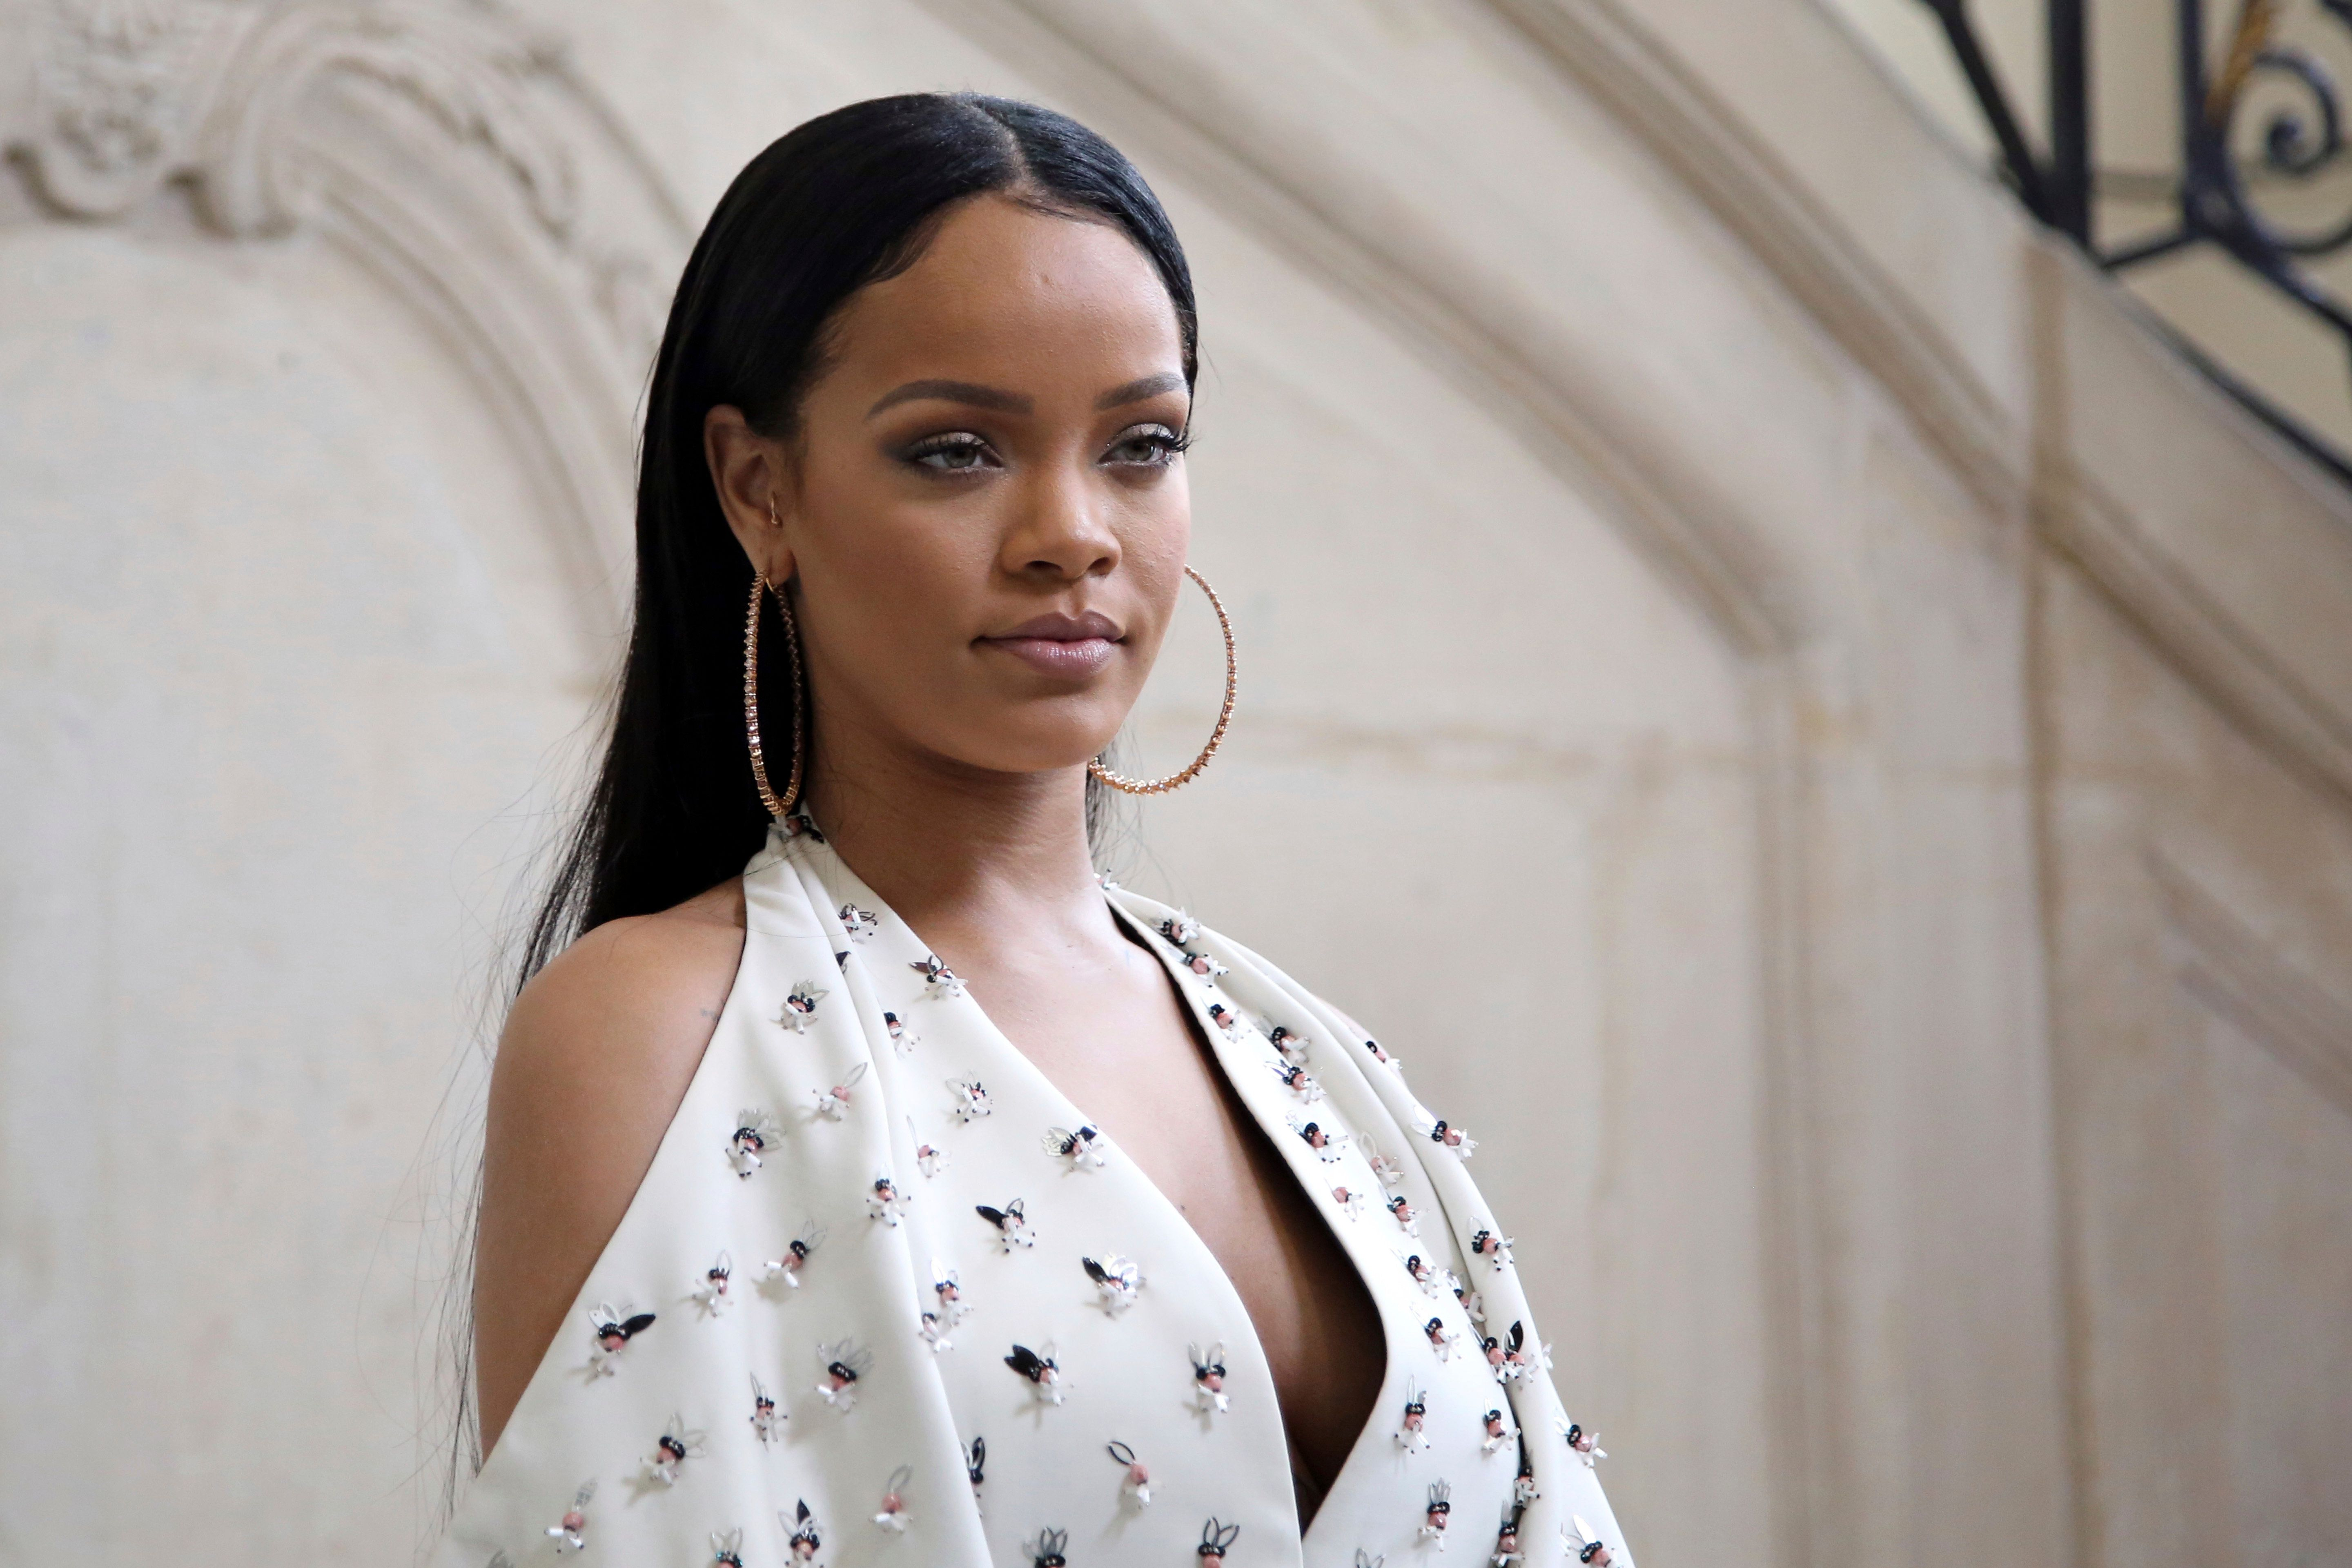 FILE - In this Sept. 30, 2016, file photo, Singer Rihanna poses for photographers as she arrives to Christian Dior's Spring-Summer 2017 ready-to-wear fashion collection presented in Paris. Rihanna posted an emotional plea online for information leading to the whereabouts of missing dancer Shirlene Quigley from New Jersey who also performed with Beyonce and Missy Elliot. (AP Photo/Thibault Camus, File)